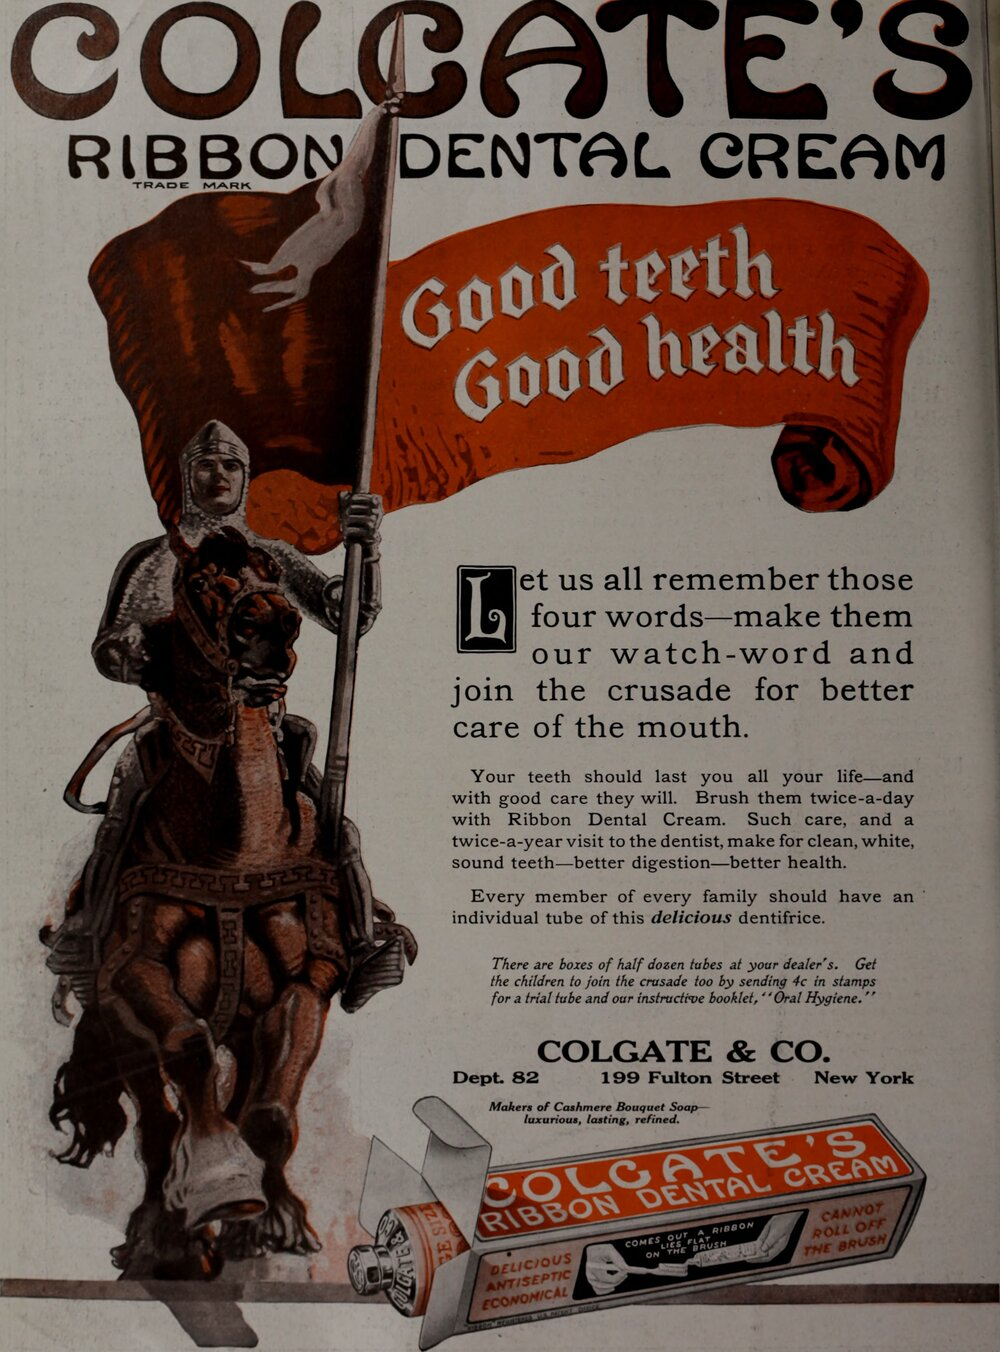 Good_Teeth_Good_Health,_Colgate's_Ribbon_Dental_Cream,_1913_(2).jpg